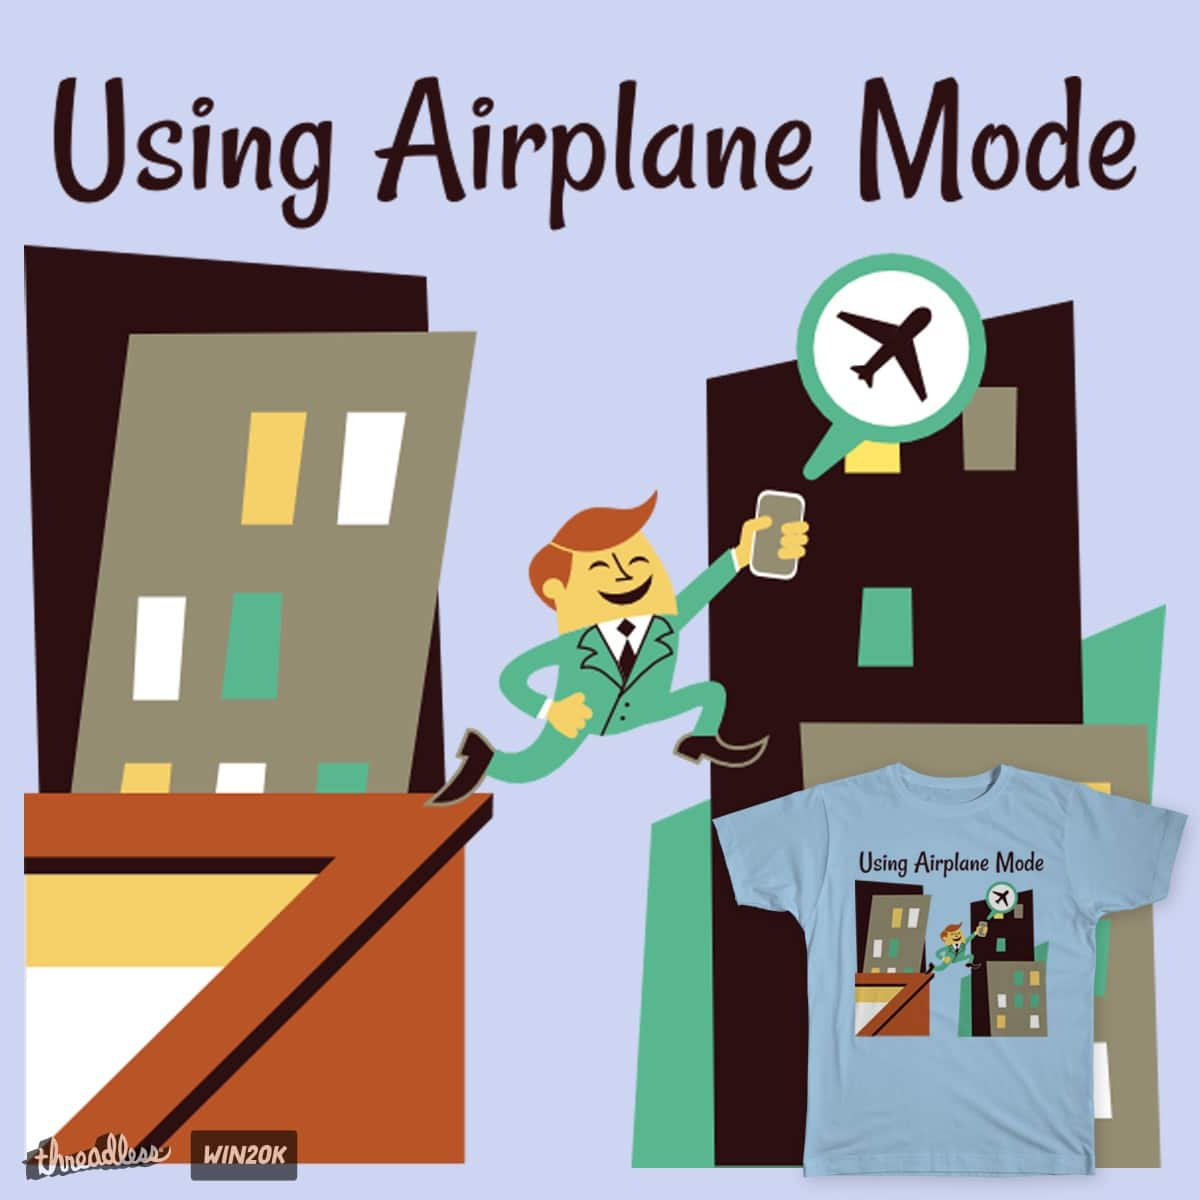 Using Airplane Mode by LagoonCreatures on Threadless